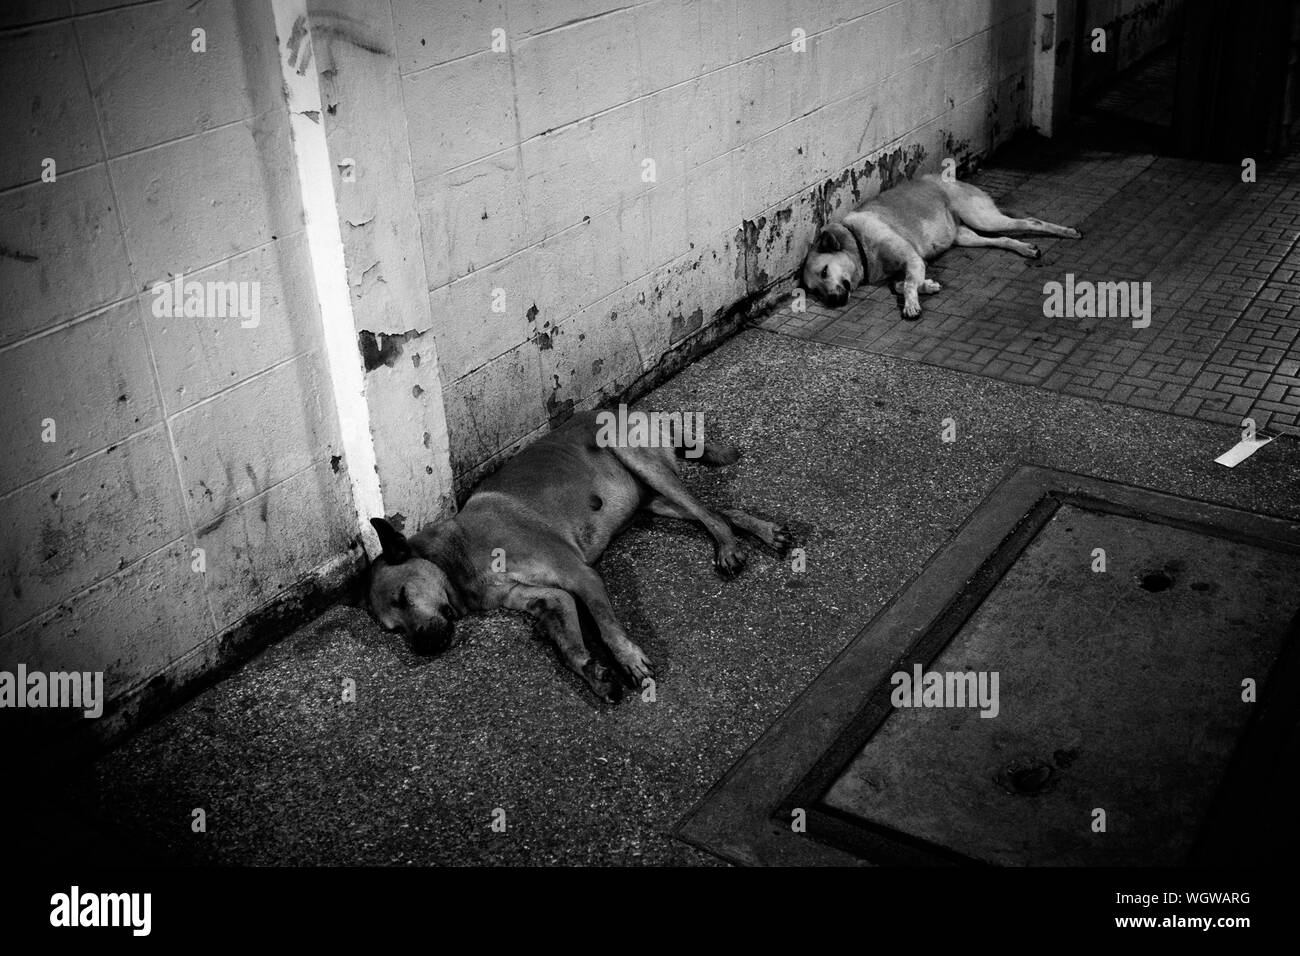 High Angle View Of Dogs Sleeping On Street Stock Photo